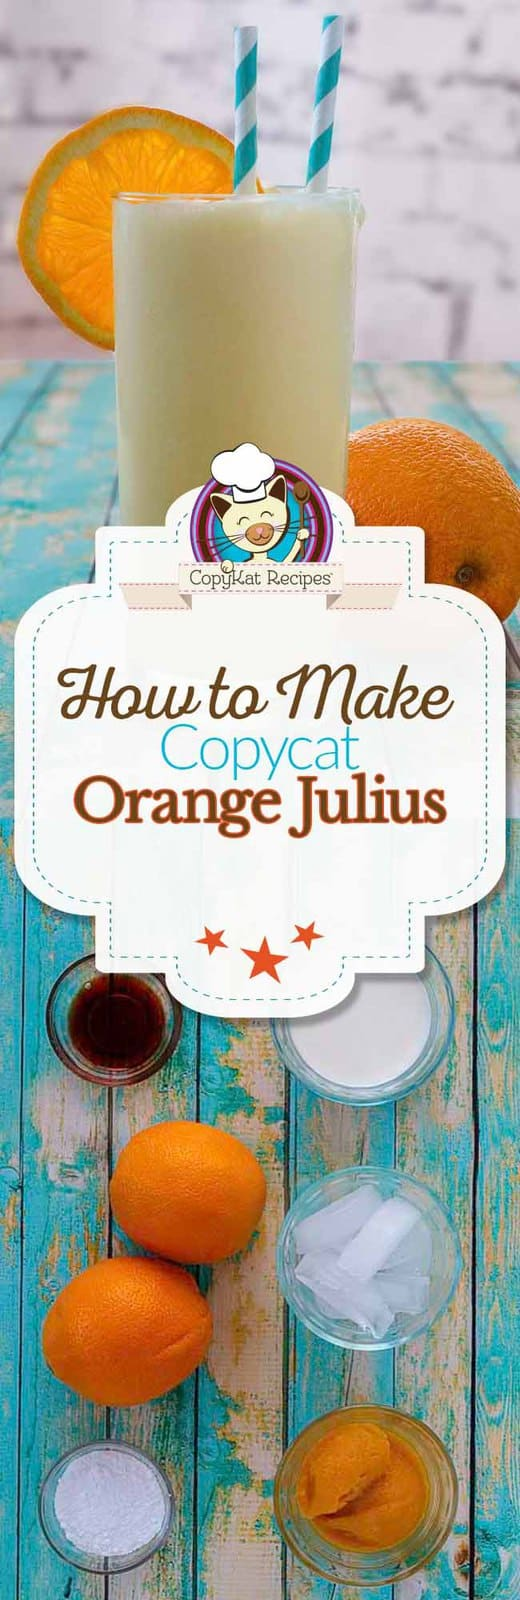 Make your own homemade Orange Julius with this easy copycat recipe.